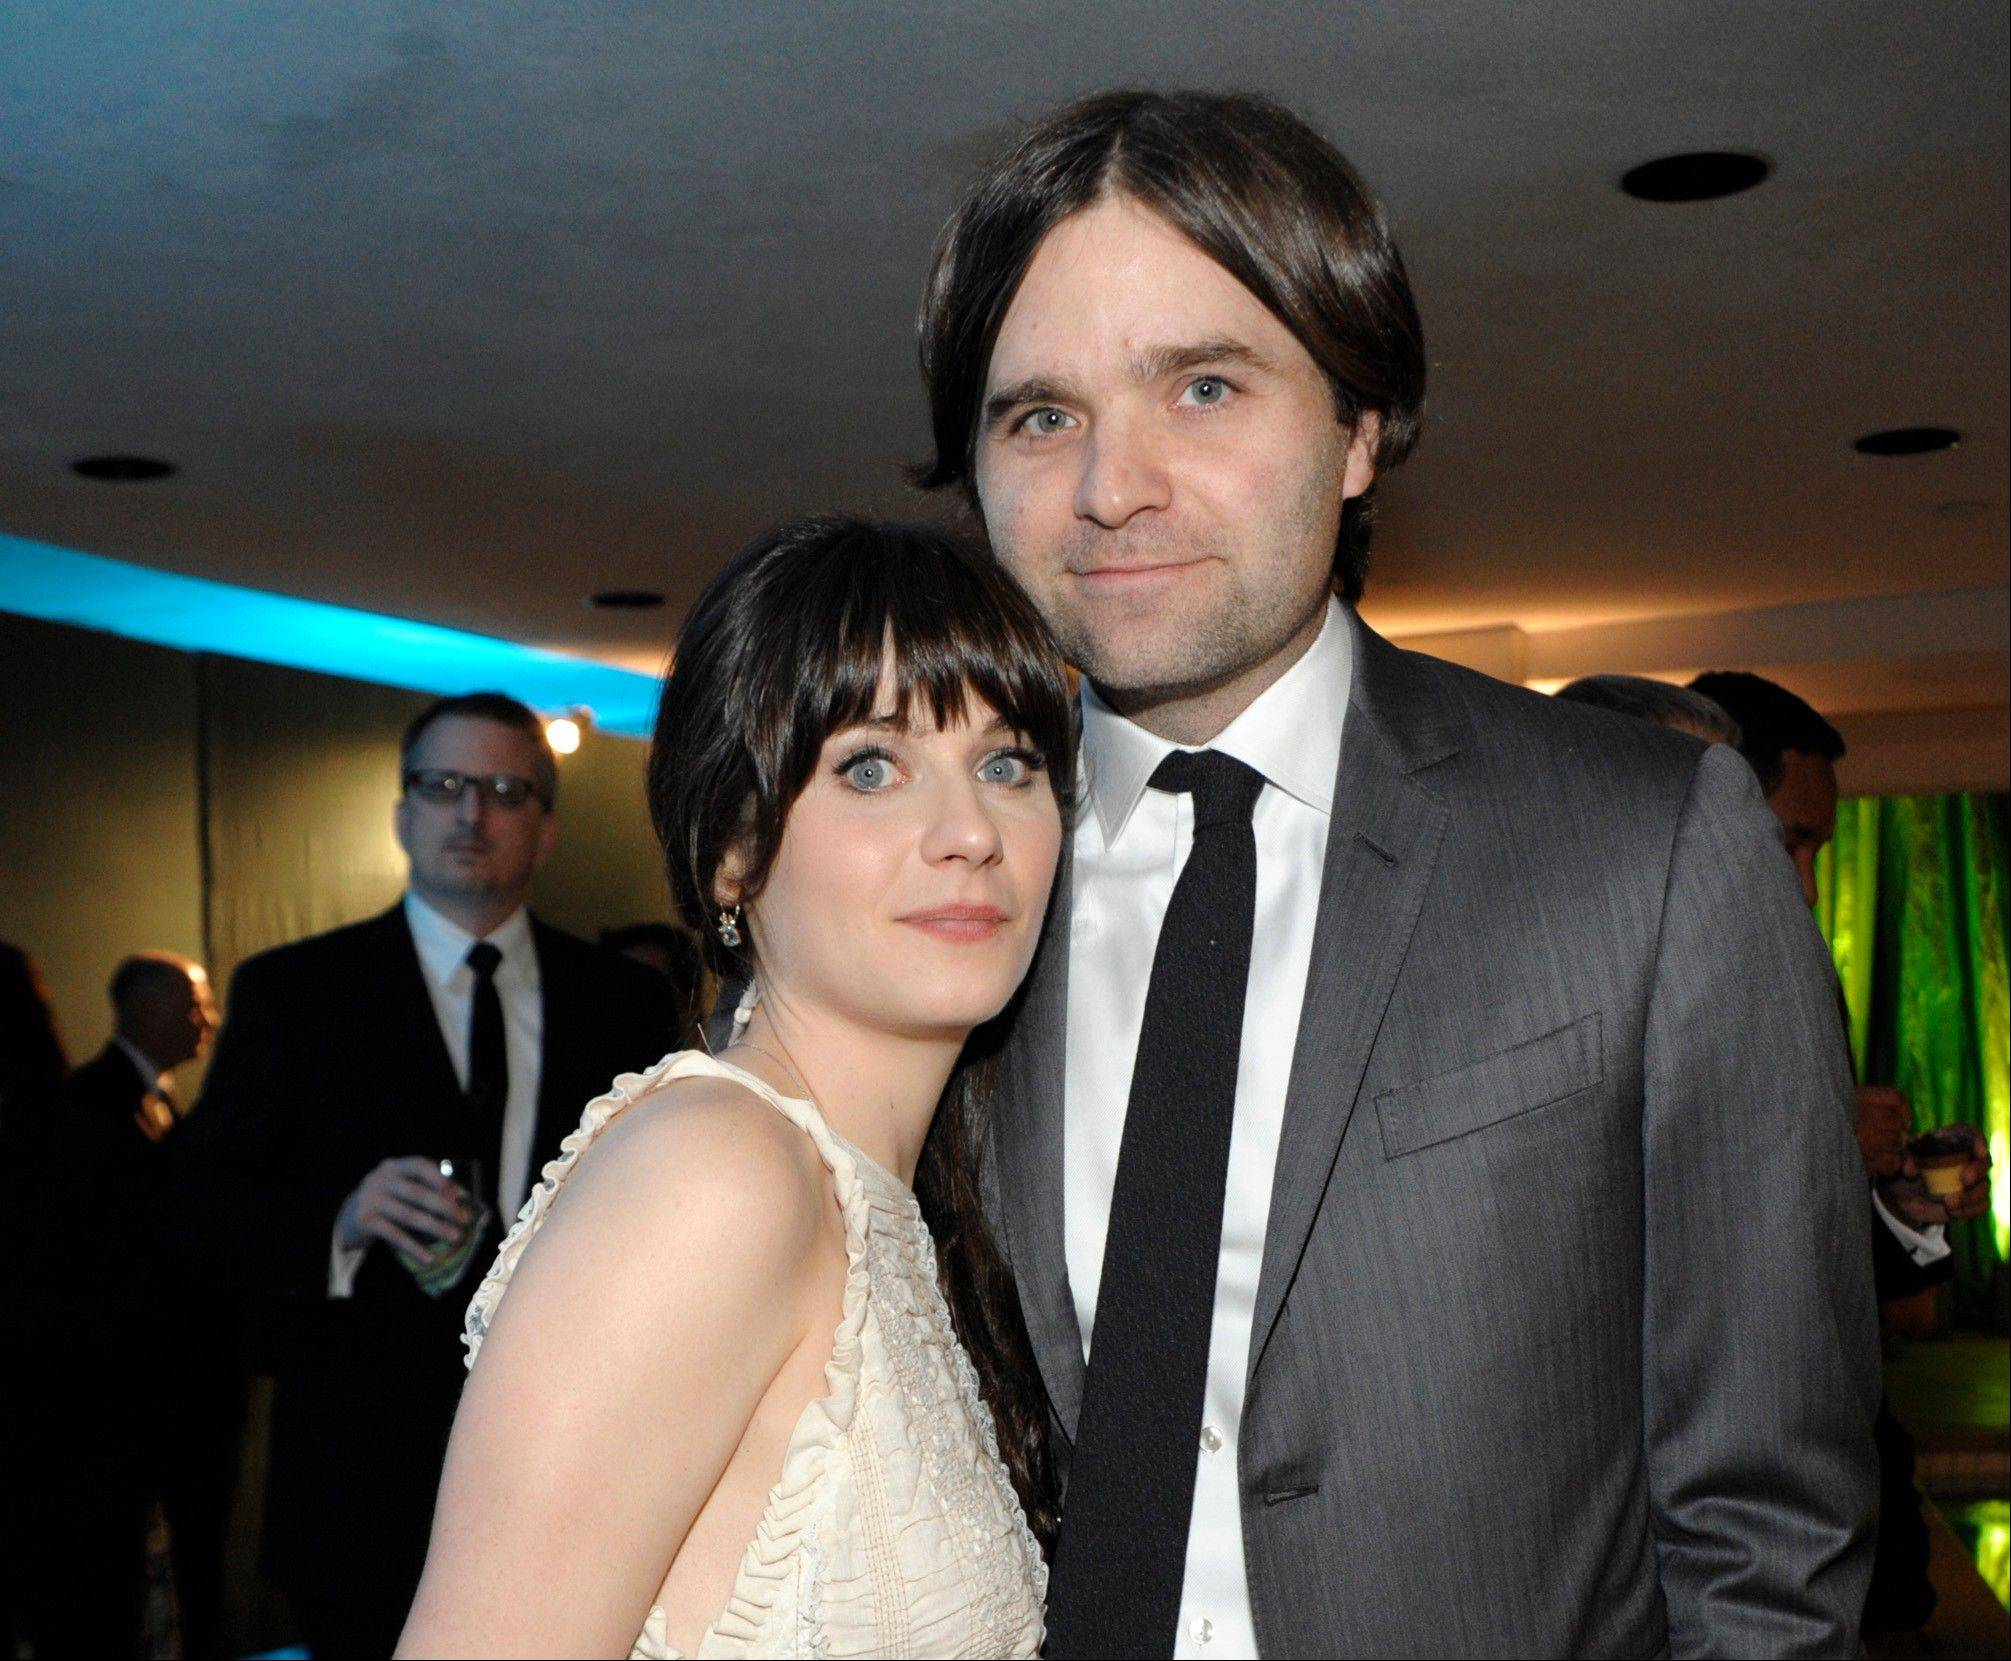 Court records show a Los Angeles judge finalized Zooey Deschanel and Ben Gibbard's divorce on Wednesday.